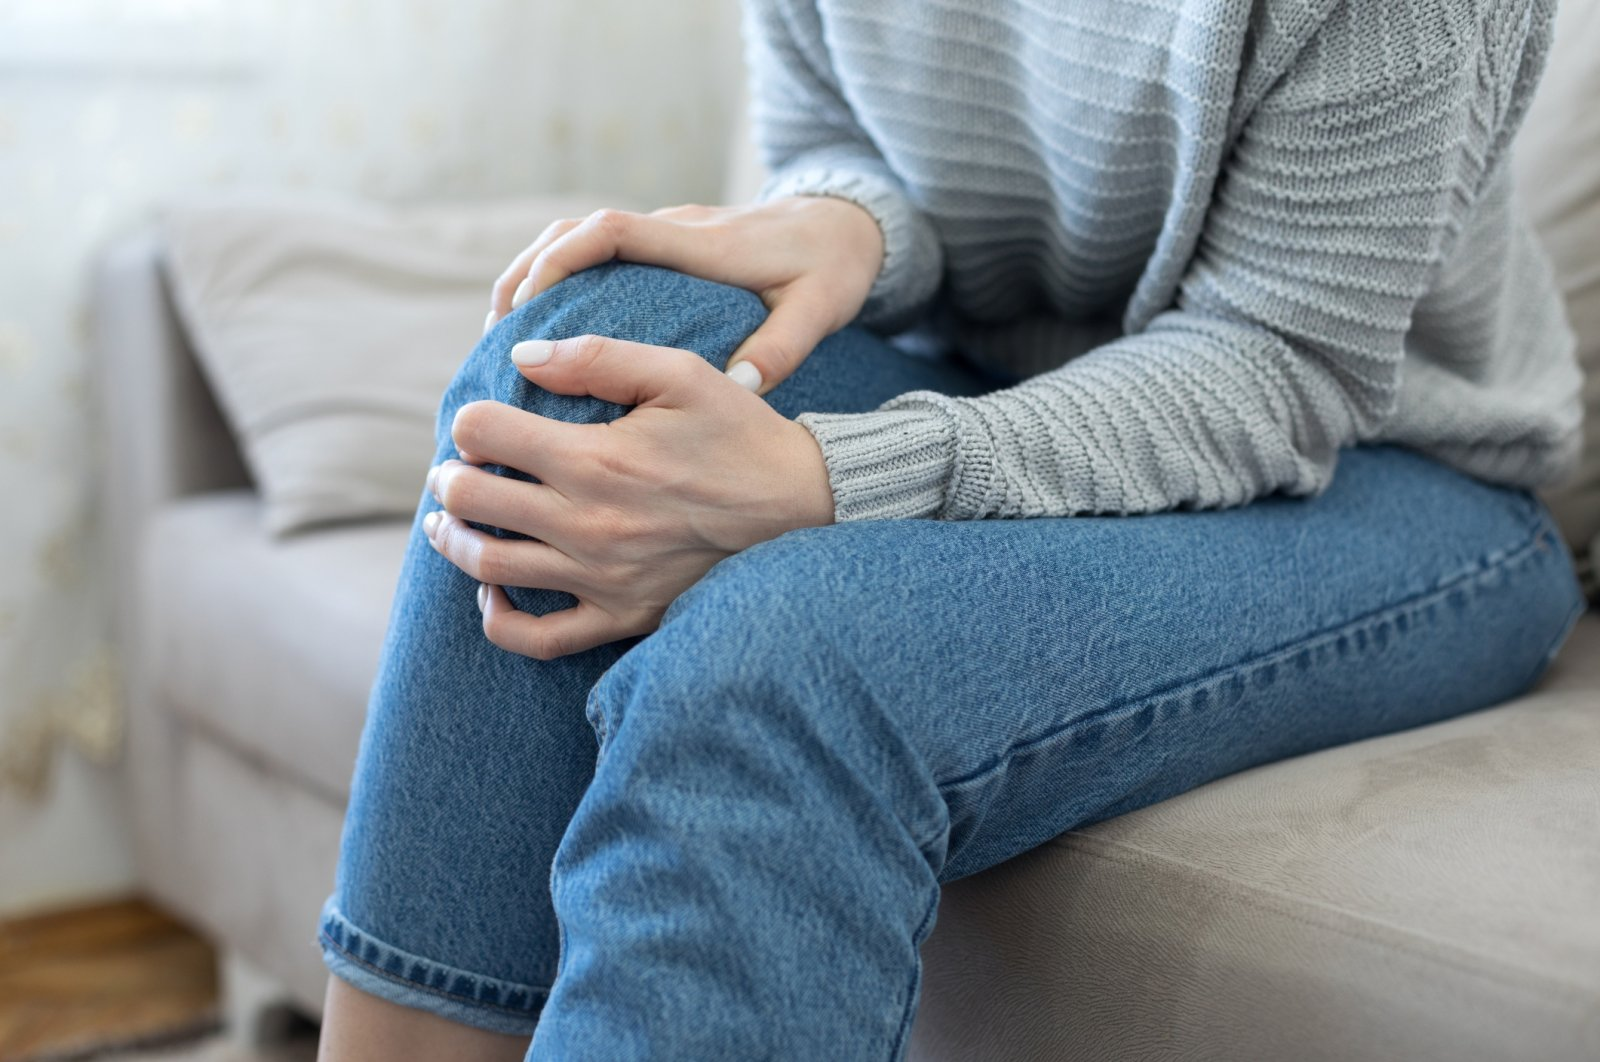 Knee pain, tenderness or stiffness in joints in the hands, hips, feet or spine can be signs of arthritis. (iStock Photo)